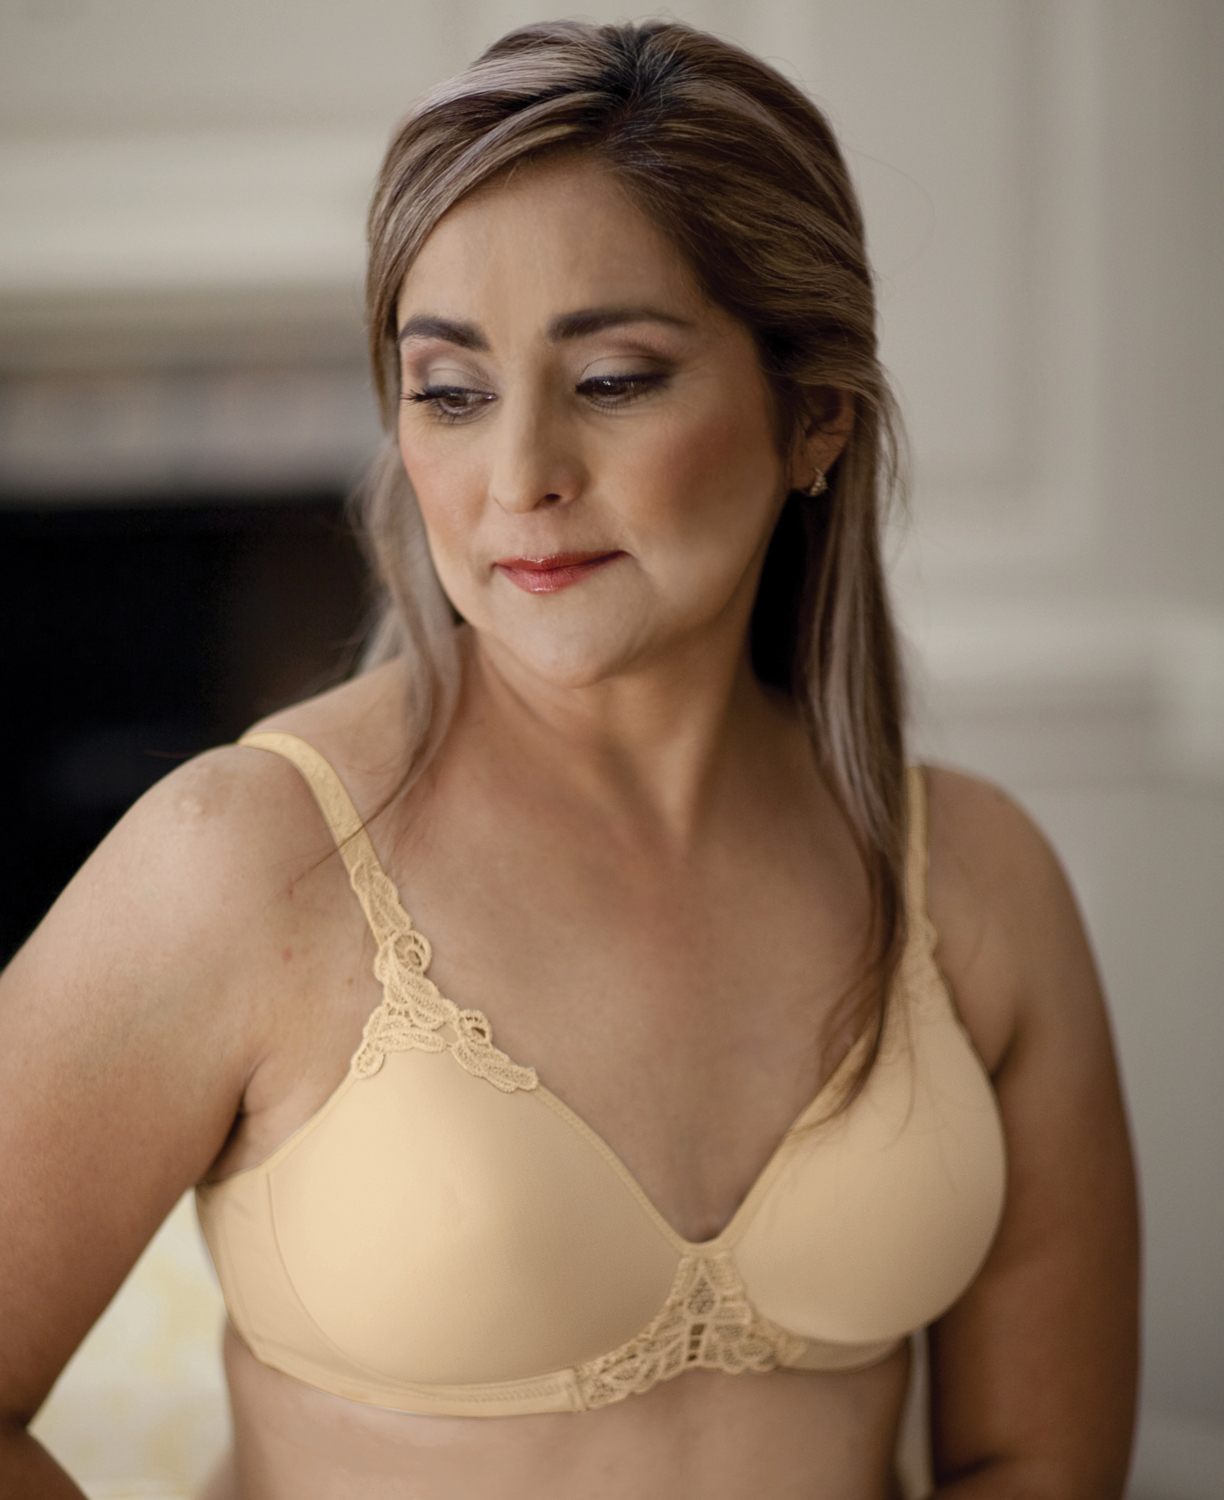 db1ca6a41a American Breast Care Petite T-Shirt Seamless Mastectomy Demi Bra - NOW IN  AA CUPS